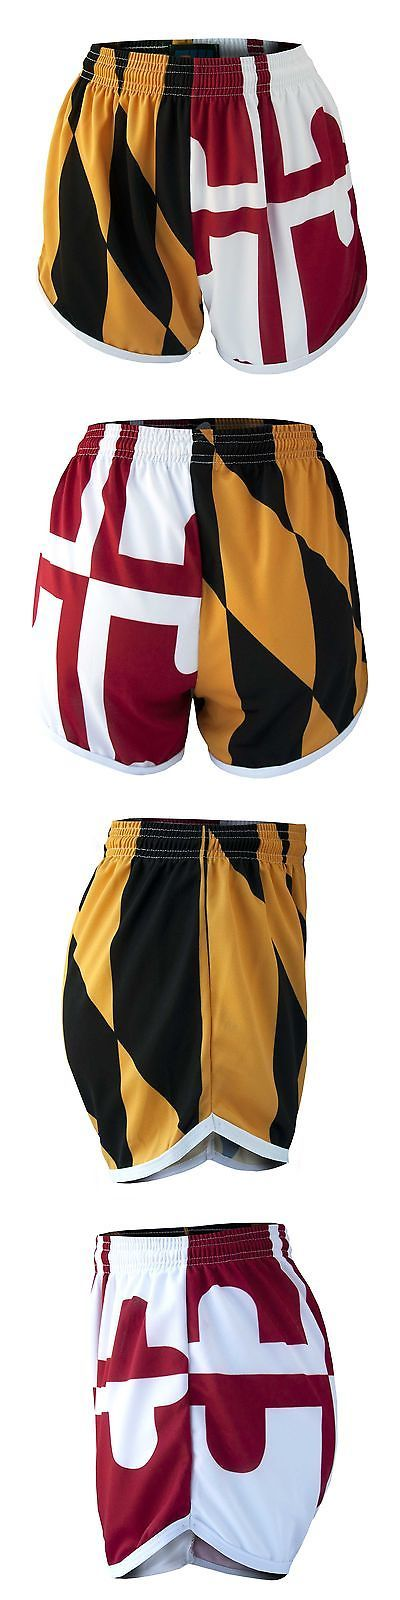 Other Womens Fitness Clothing 13360: Fit 2 Win Womens Maryland Flag Running Short Medium BUY IT NOW ONLY: $40.53